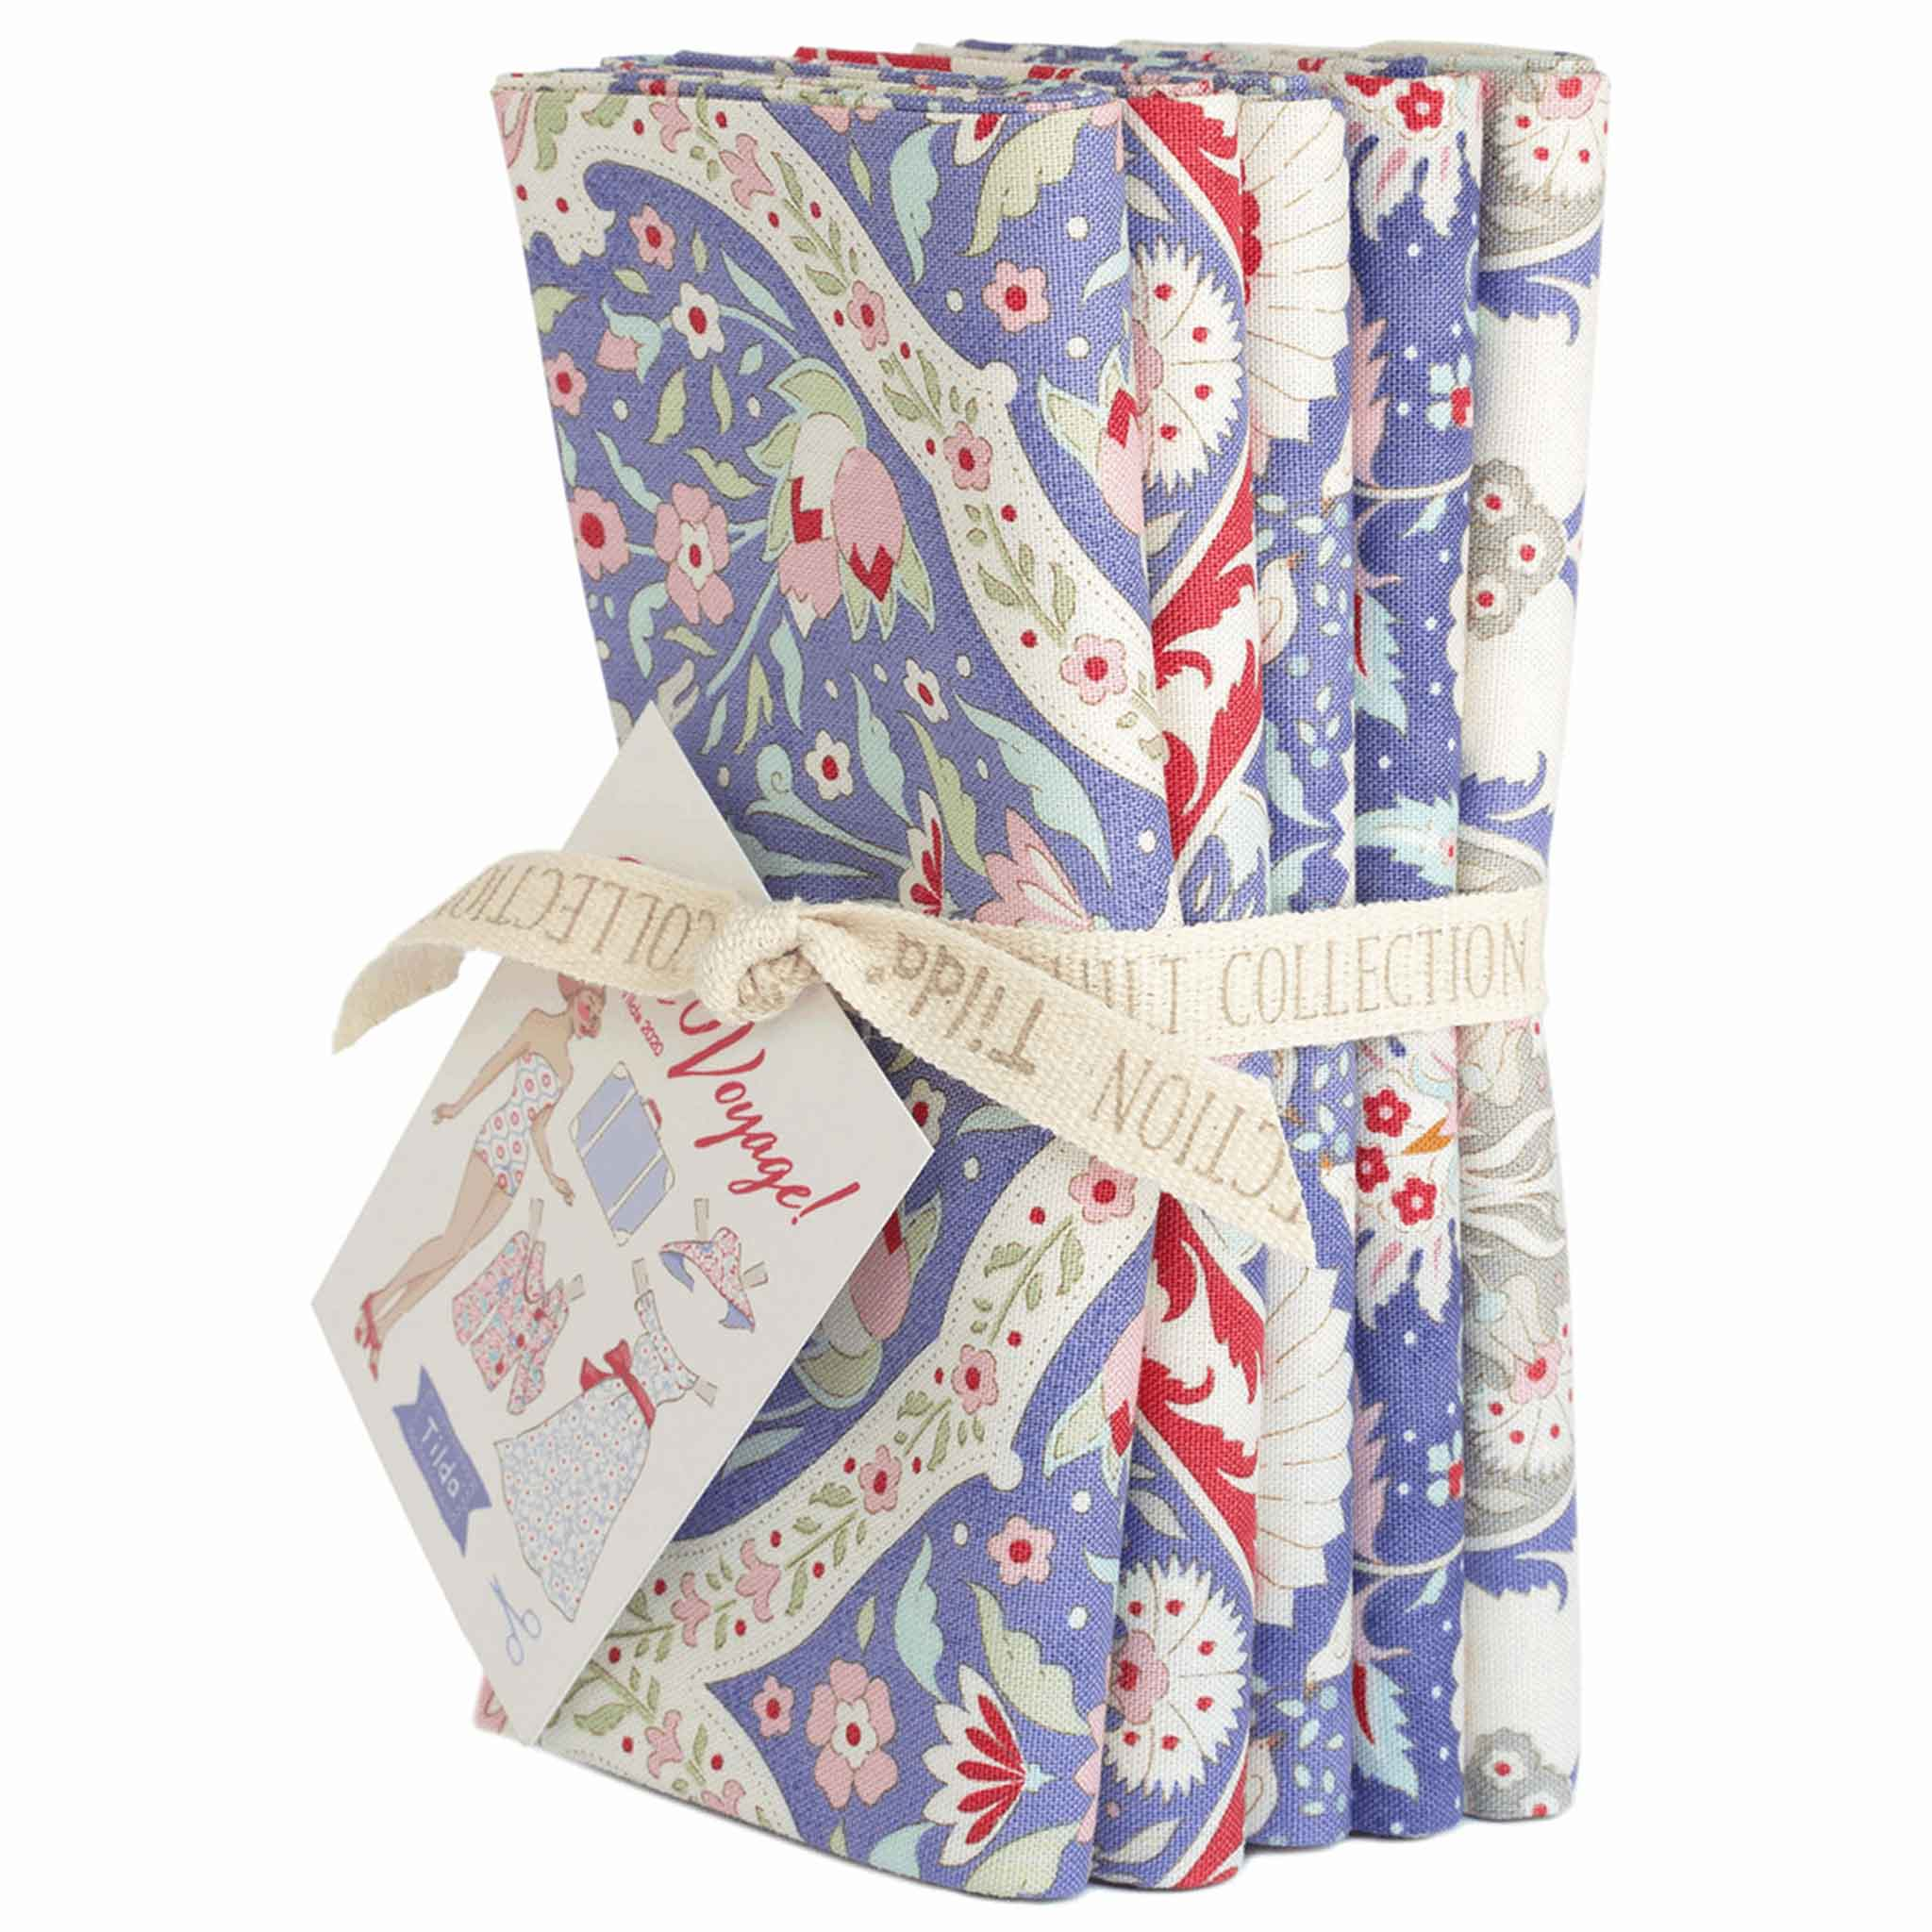 Tilda Blue Bon Voyage Fat Quarter Bundle, Tilda 300072, 5 Cotton Fat Quarters, 50 cm x 55 cm - Fabric and Ribbon